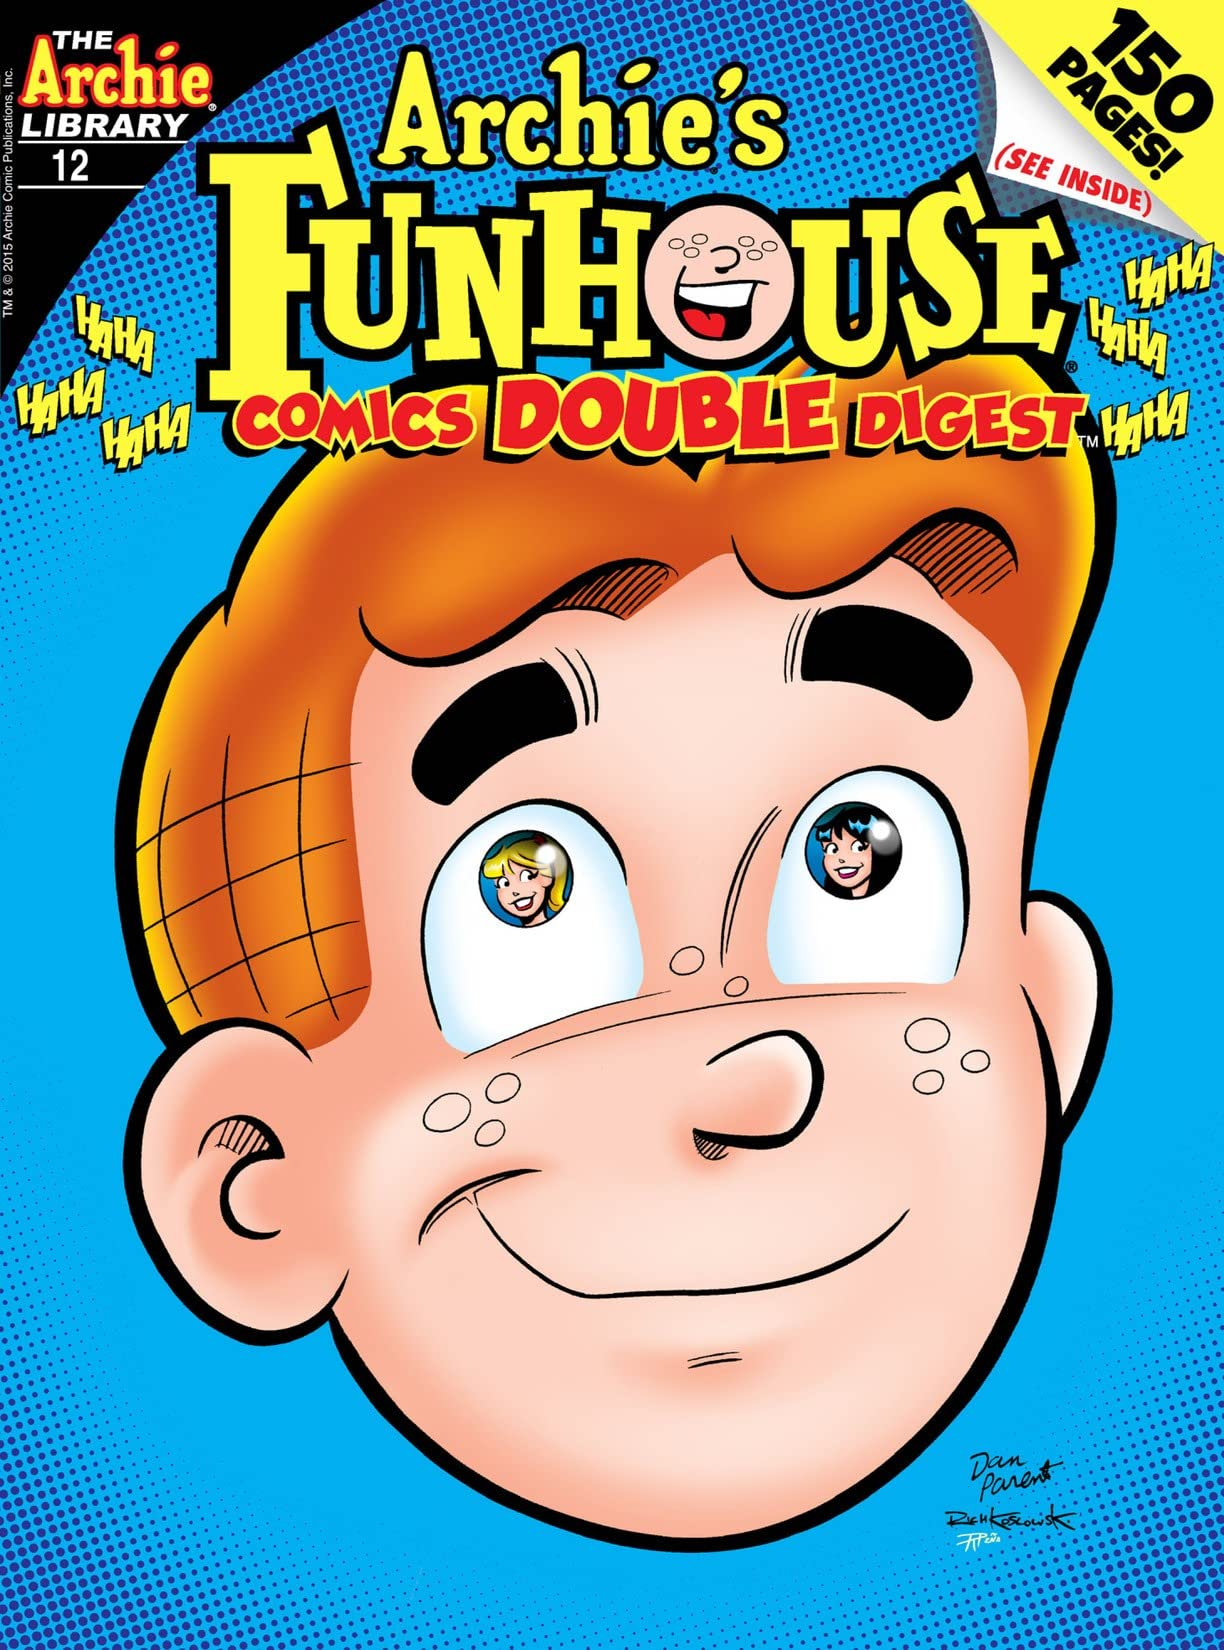 Archie's Funhouse Comics Double Digest #12